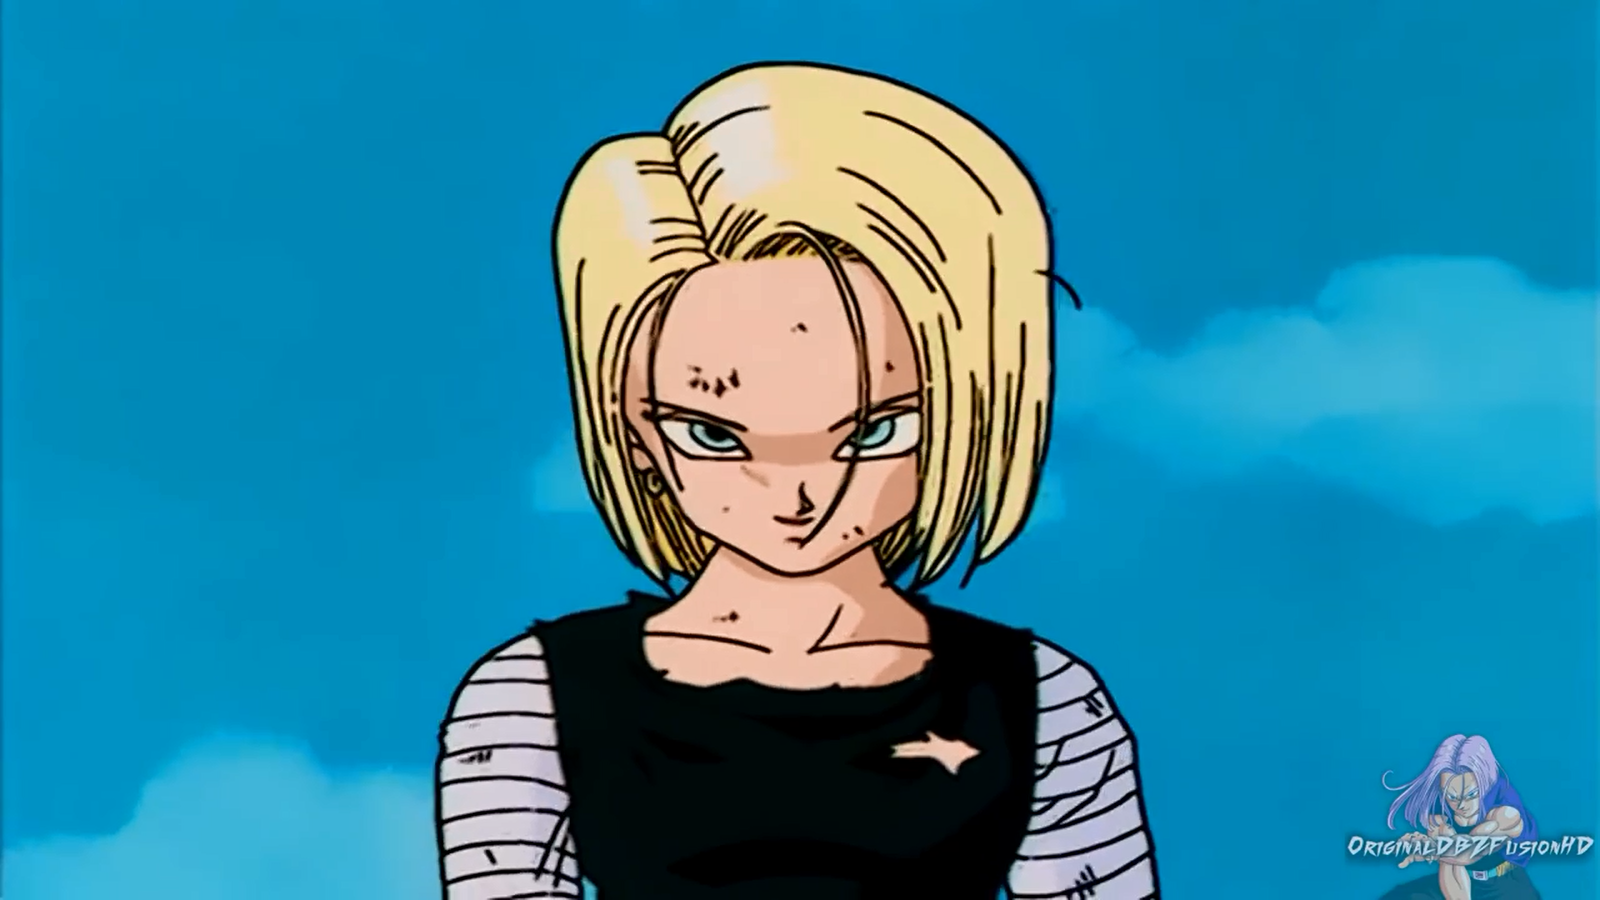 Android 18 ultra dragon ball wiki fandom powered by wikia - Dragon ball zc 18 ...